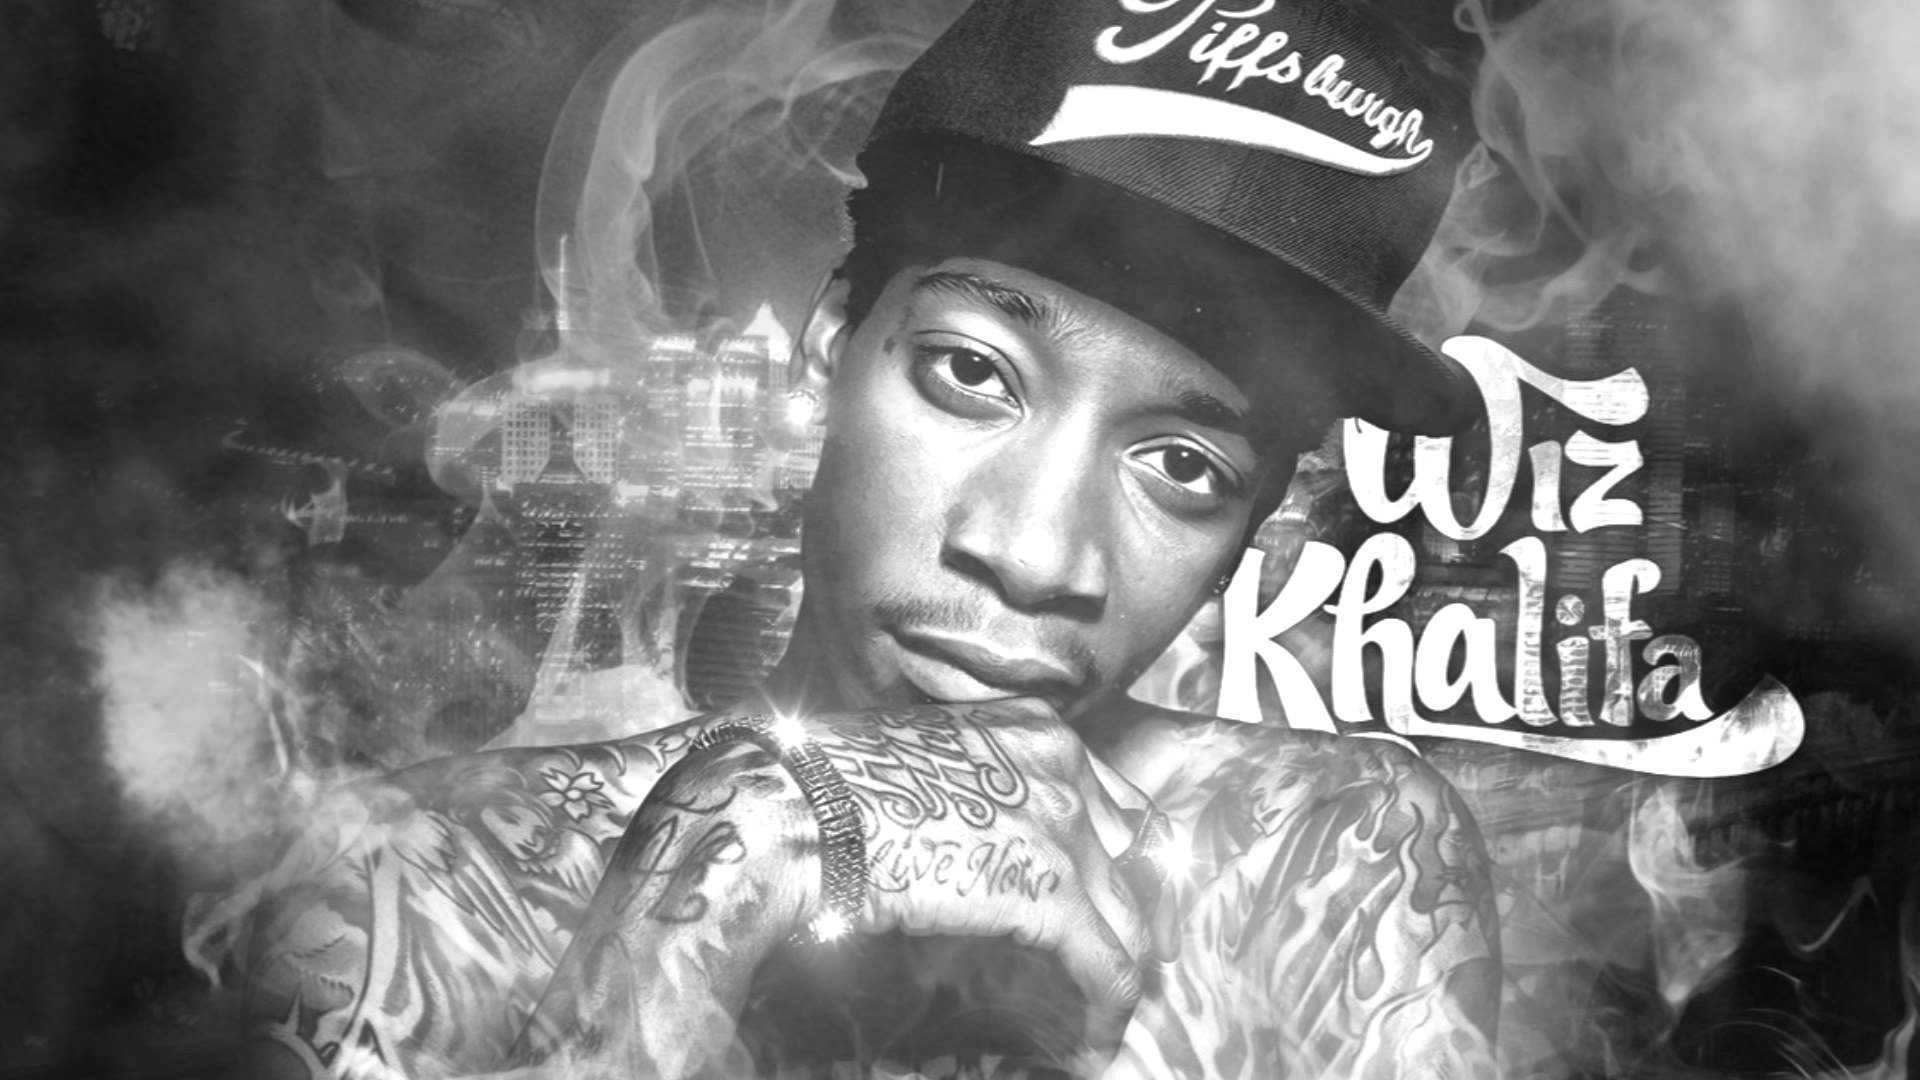 1920x1080 Wiz Khalifa Wallpapers 16 - 1920 X 1080 | stmed.net